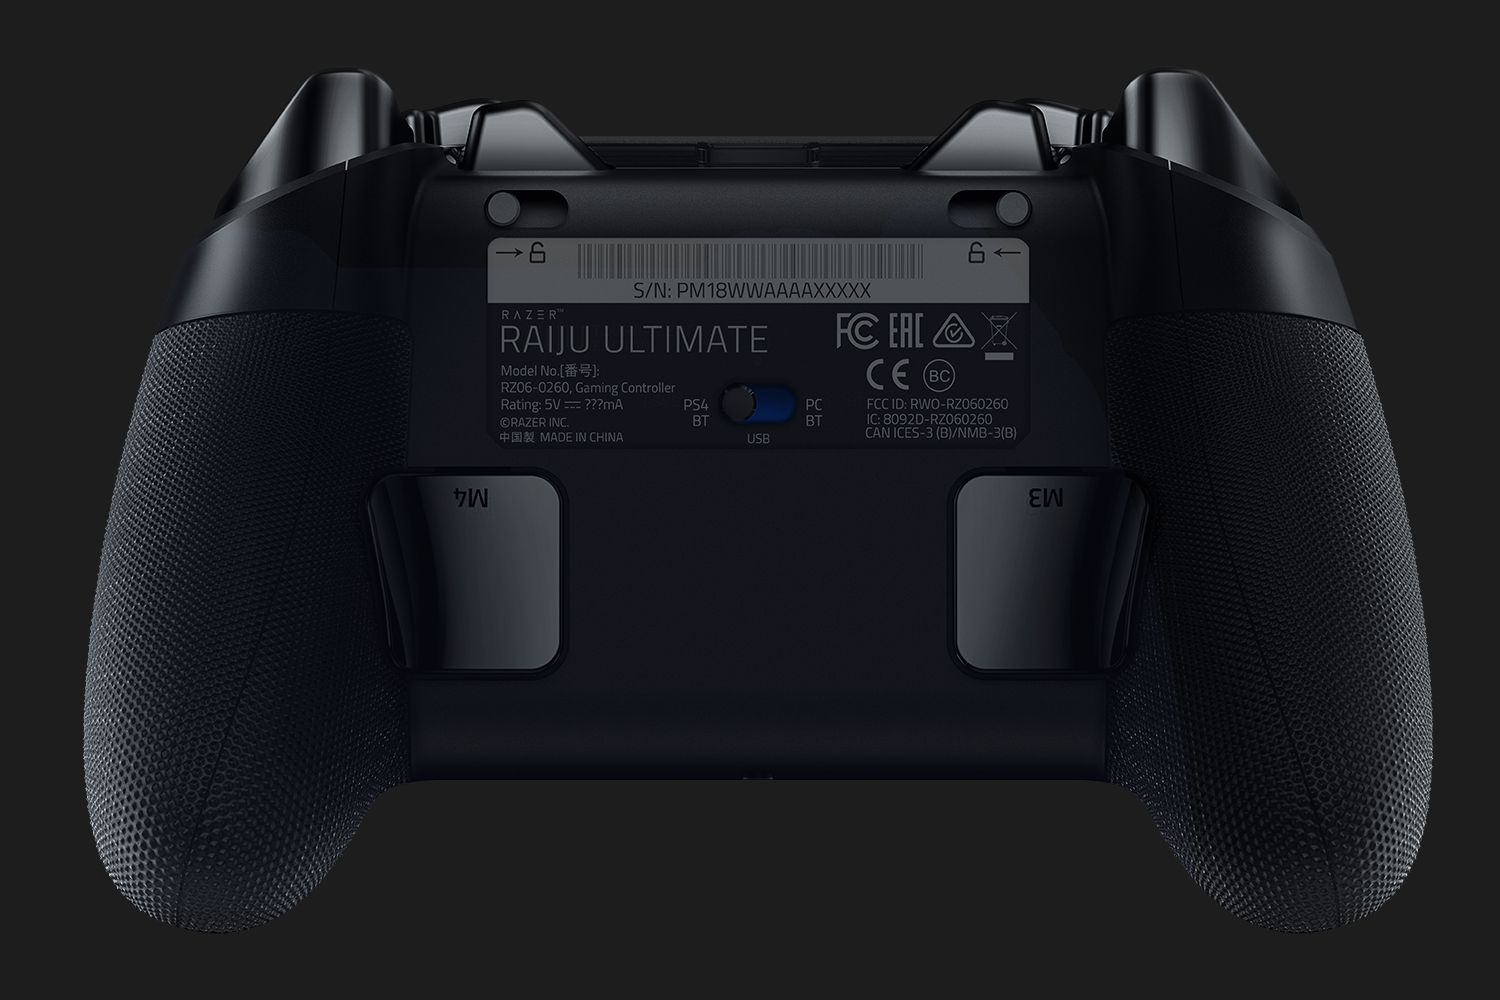 Review Razer Raiju Ultimate Controller Incredible And Expensive Mspoweruser Razer raiju ultimate 2019, wireless and wired gaming controller with mecha tactile action buttons, interchangeable parts, quick control panel and rgb chroma lighting. review razer raiju ultimate controller